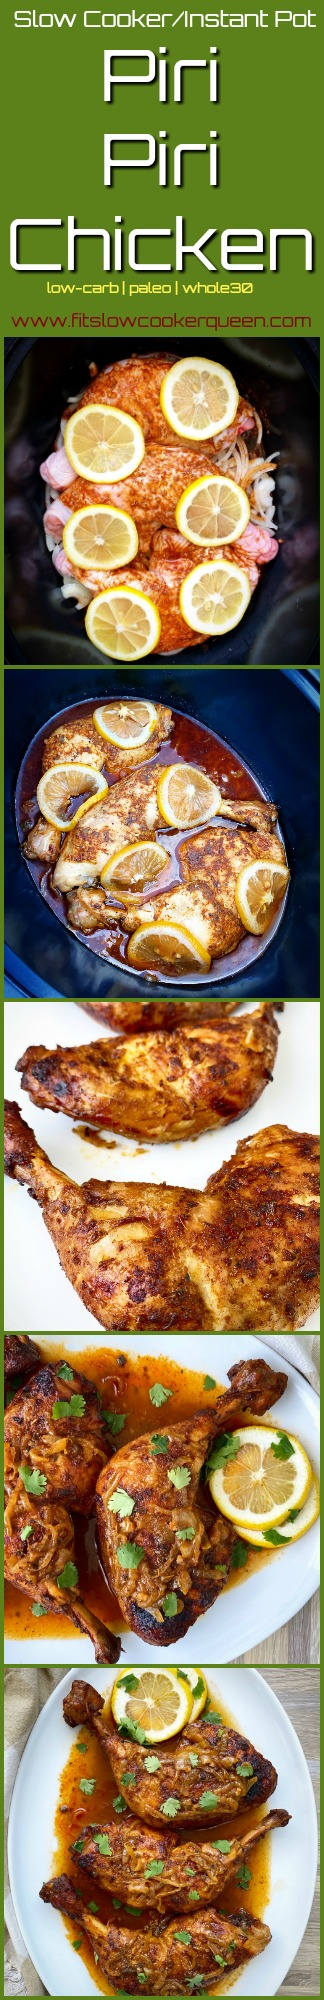 another pinterest pin for Slow Cooker_Instant Pot Piri Piri Chicken (Low-Carb, Paleo, Whole30)